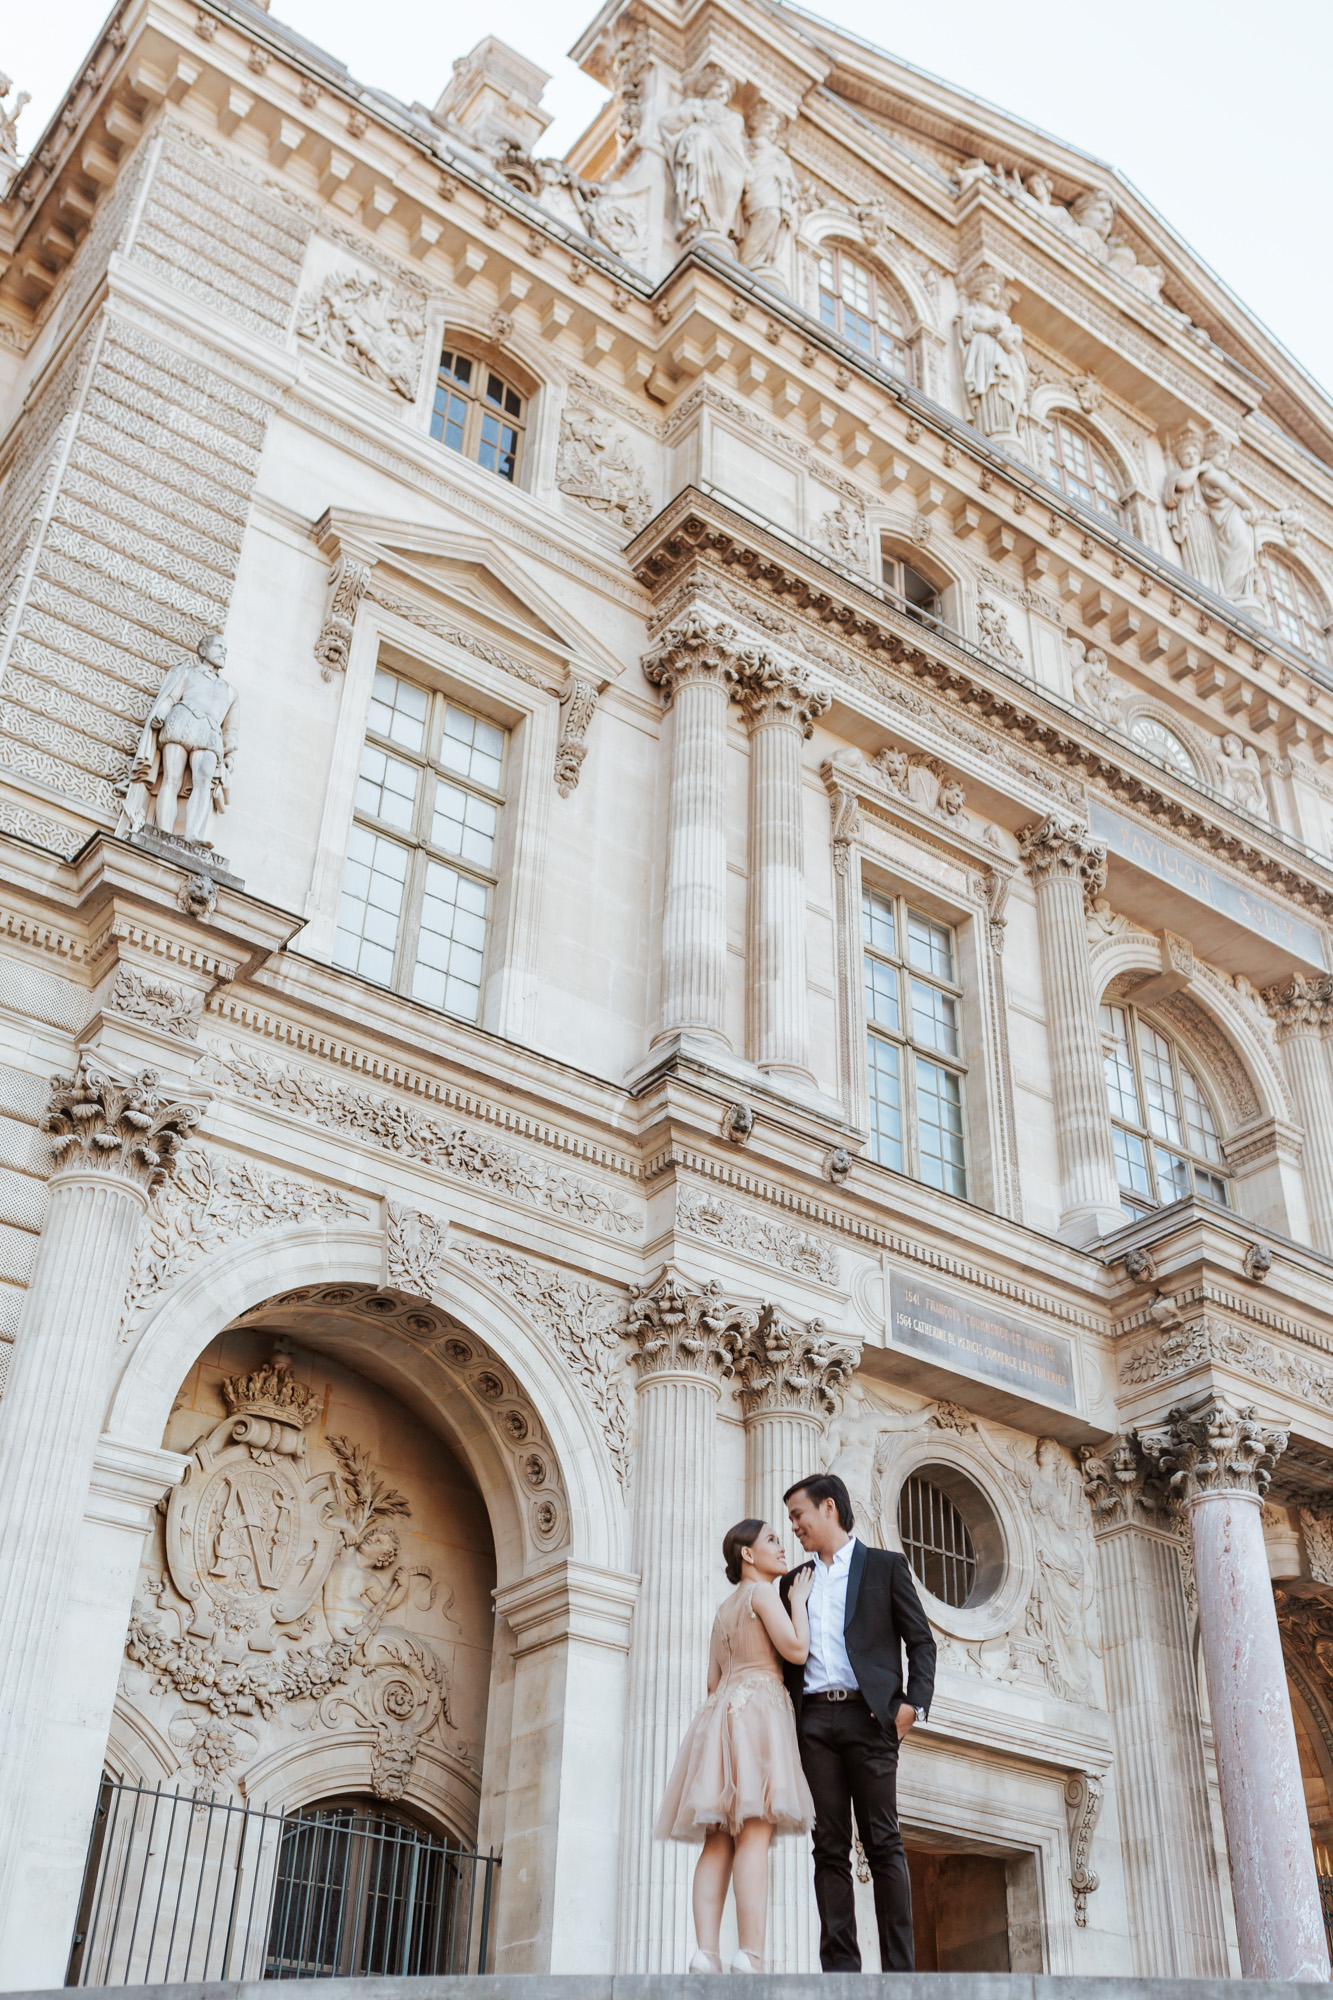 Pre-wedding couple portrait standing in the courtyard of the Louvre Museum captured by Paris Photographer Federico Guendel